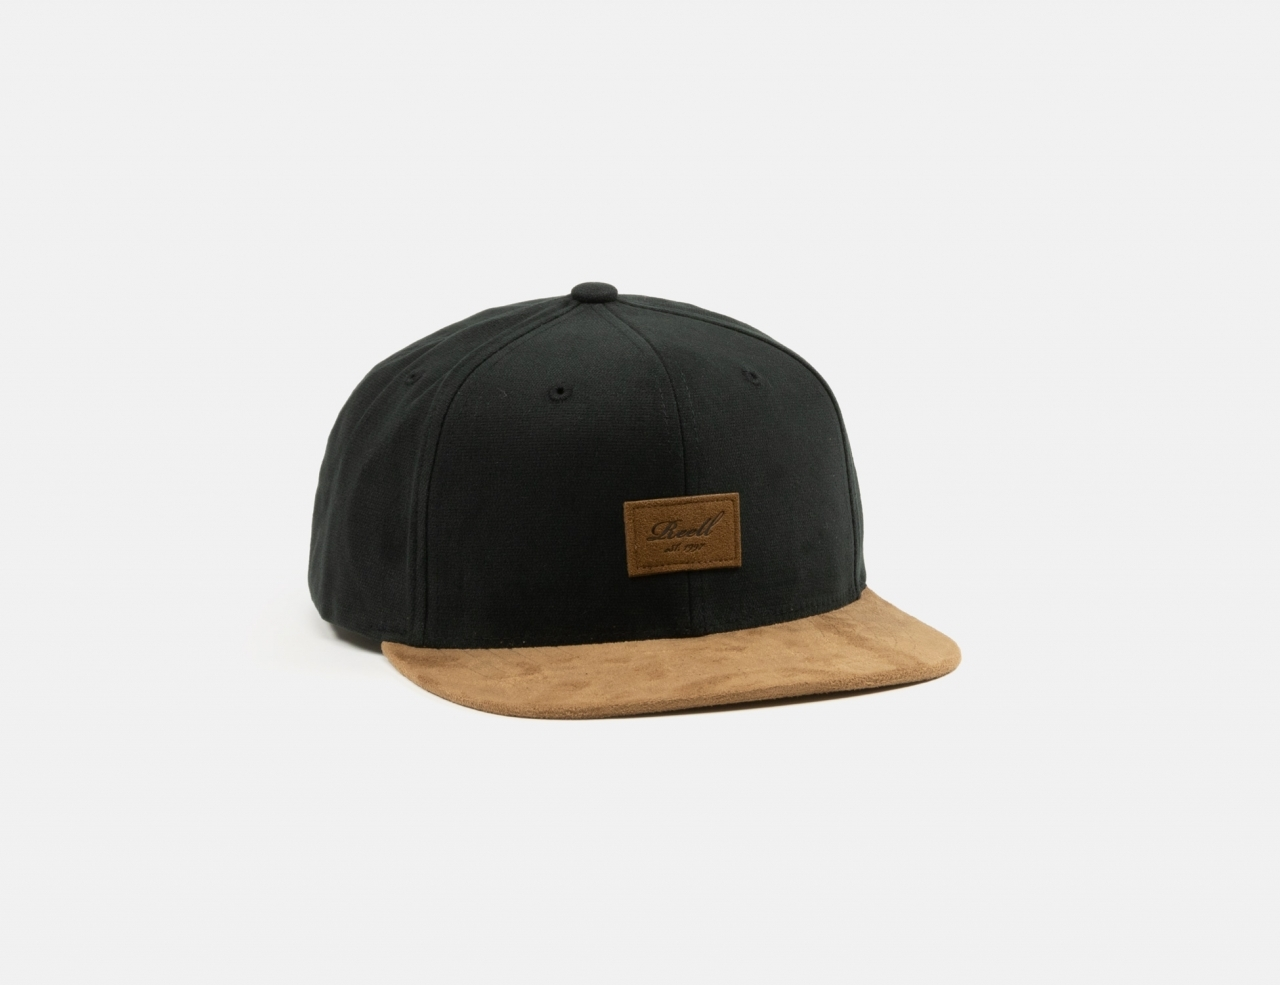 Reell Jeans Suede 6-Panel Cap - Black